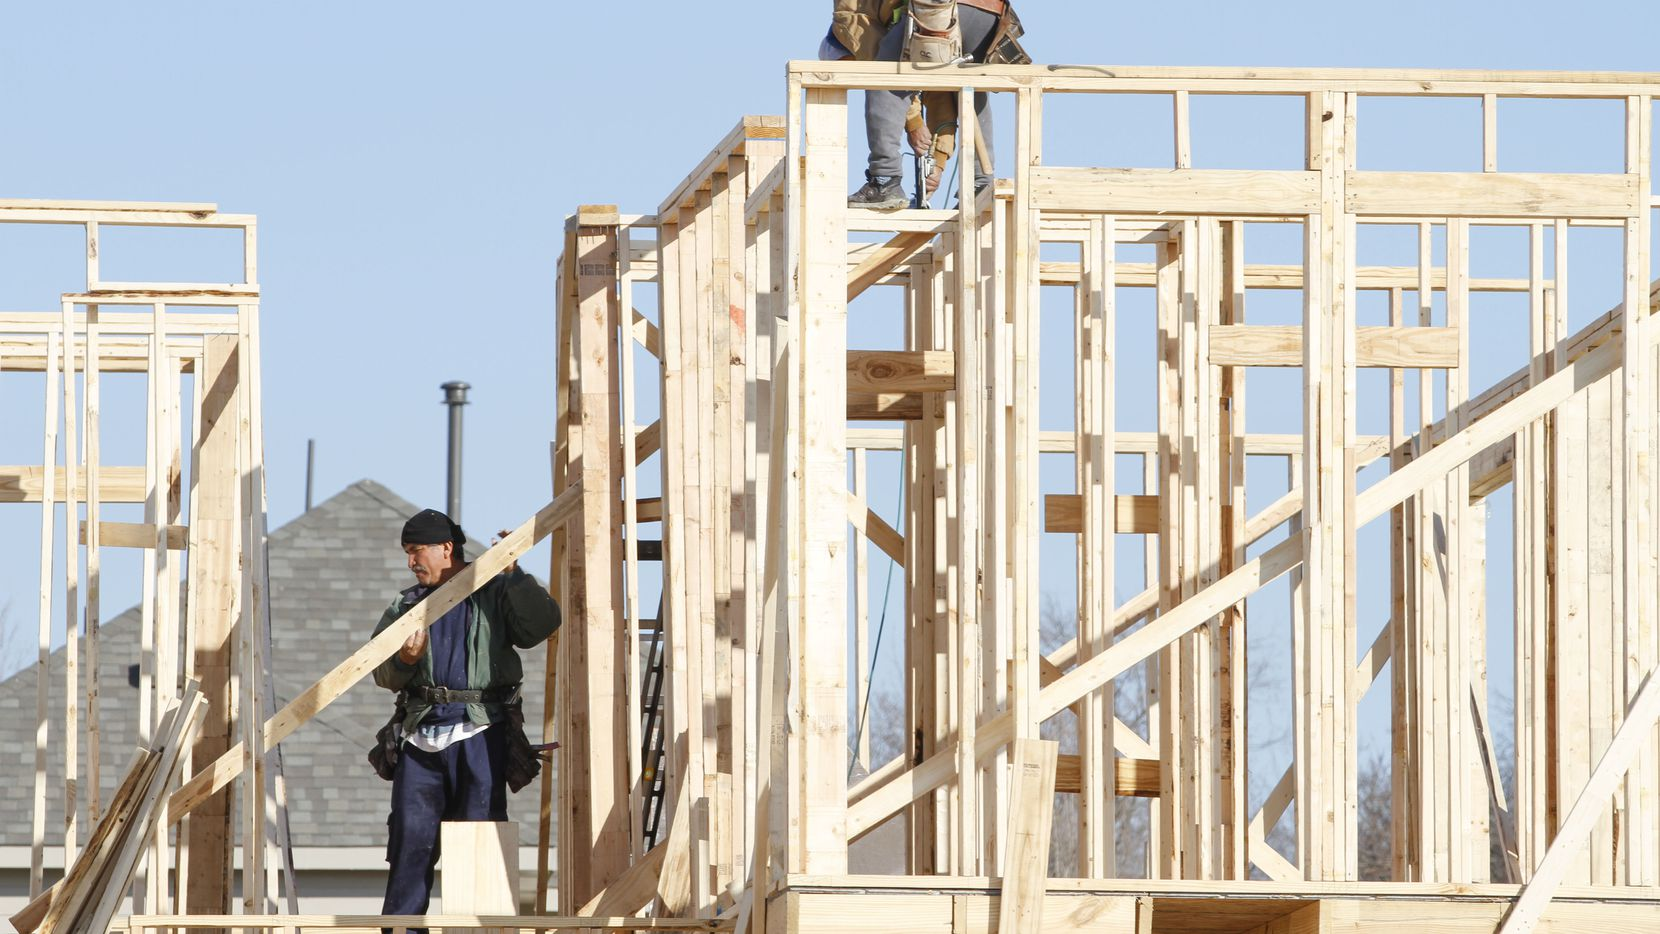 D-FW builders started more than 35,000 houses in 2019.